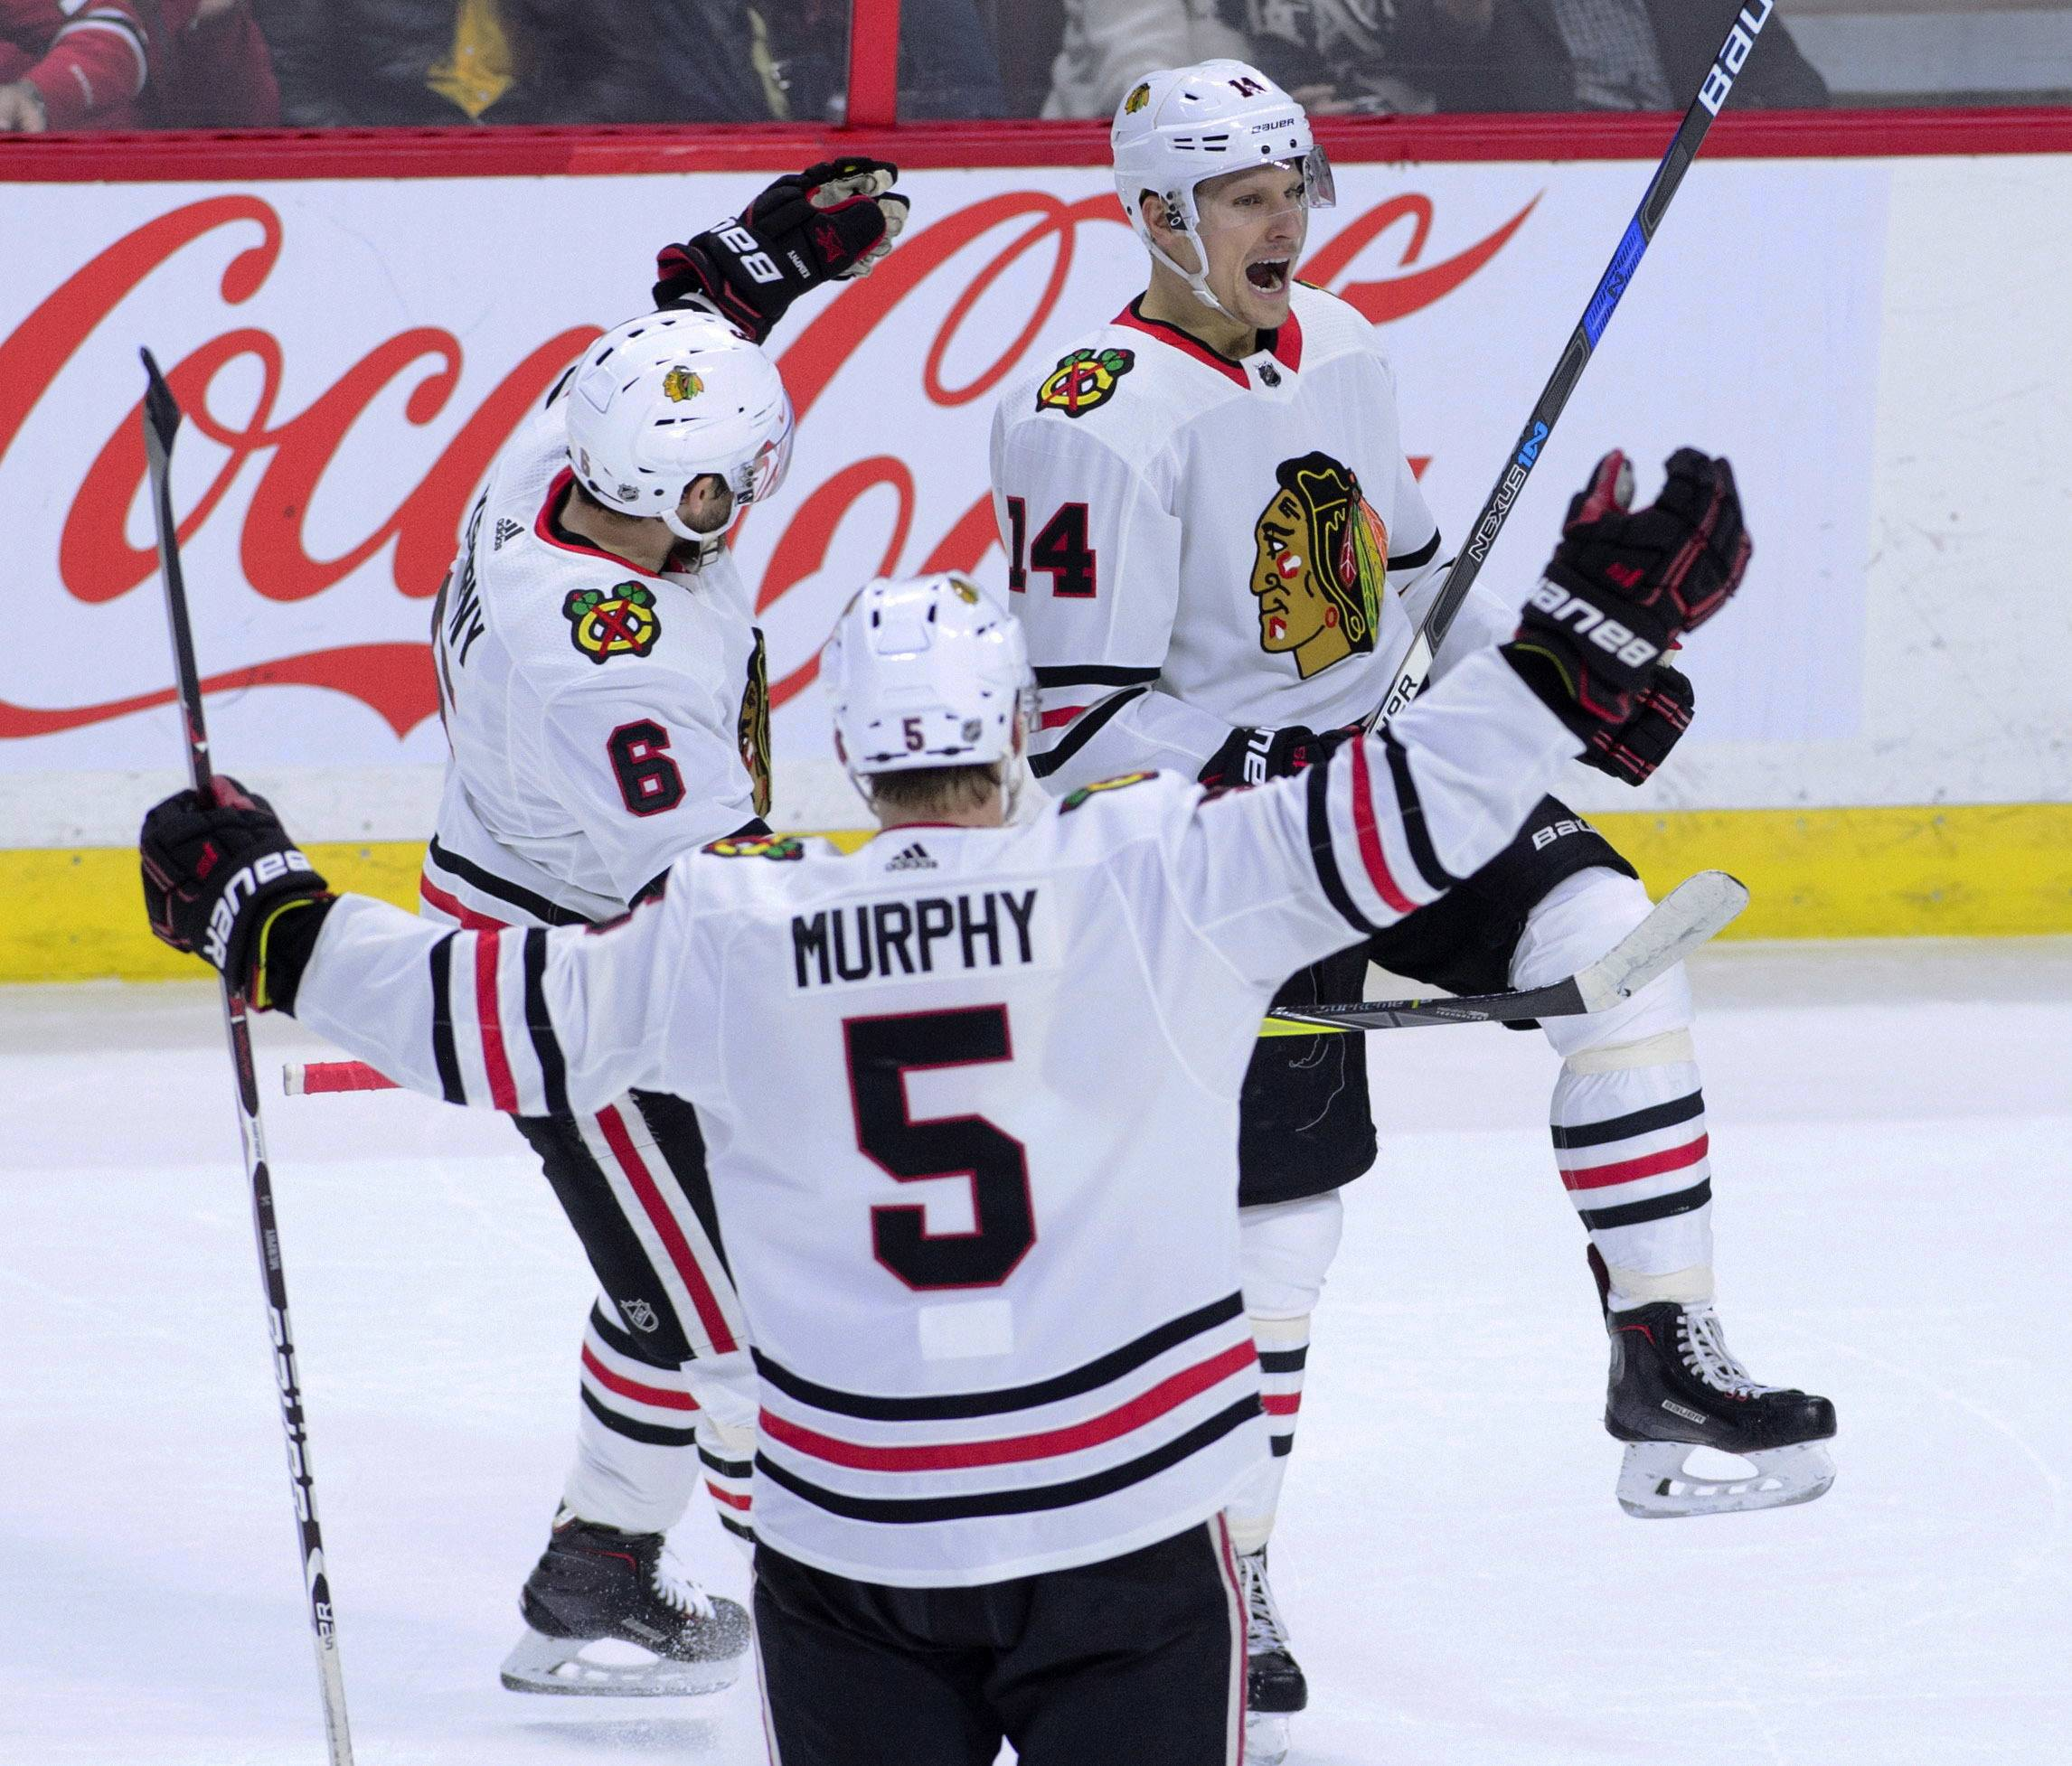 Chicago Blackhawks' Richard Panik (14) celebrates a goal with teammates Michal Kempny (6) and Connor Murphy (5) during the first period of an NHL hockey game, Tuesday, Jan. 9, 2018, in Ottawa, Ontario. (Sean Kilpatrick/The Canadian Press via AP)